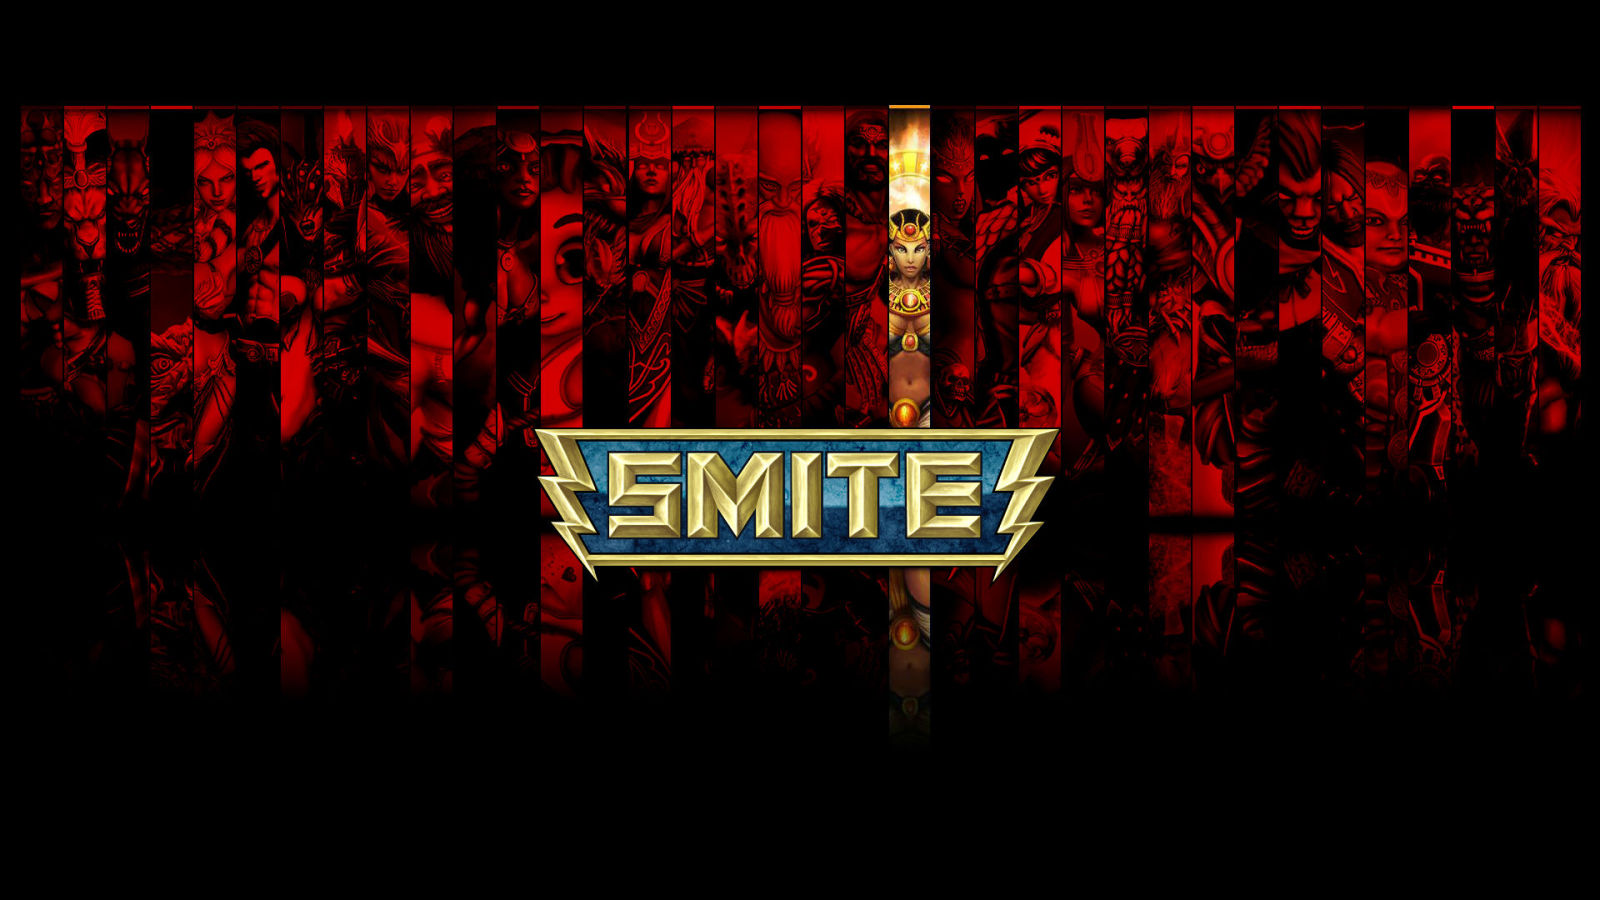 3d Fire Name Wallpaper Smite Logo Game Hd Desktop Wallpapers 4k Hd